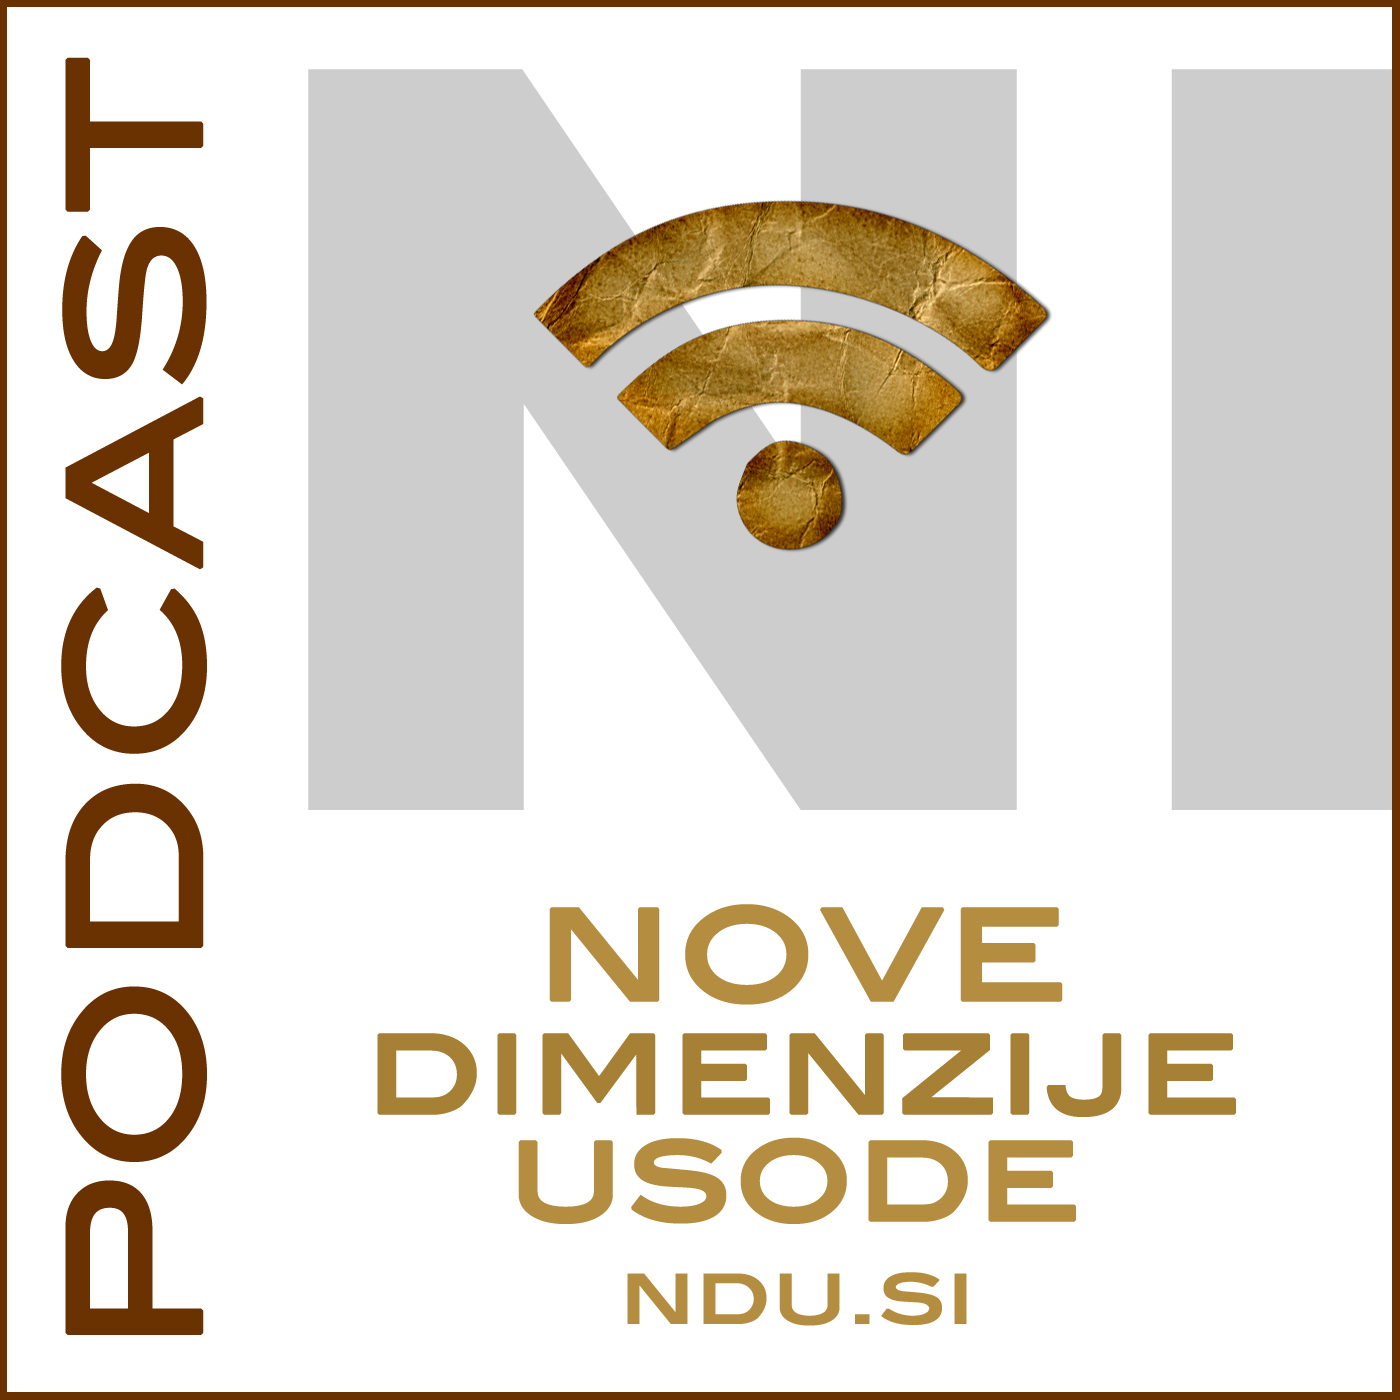 Podcast NOVE DIMENZIJE USODE – Podcast.si